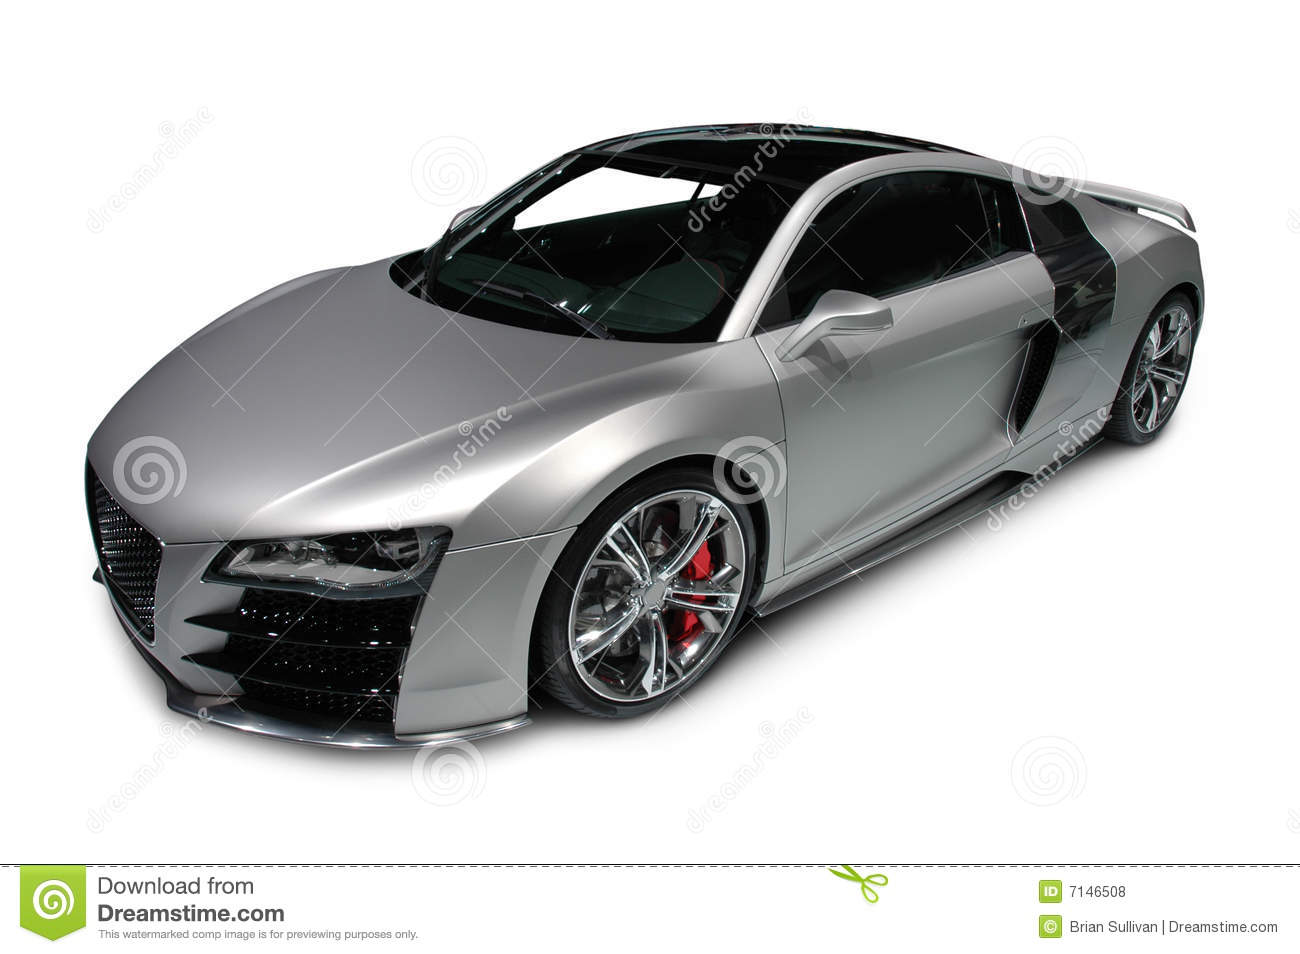 audi r8 auf wei em hintergrund lizenzfreie stockfotos bild 7146508. Black Bedroom Furniture Sets. Home Design Ideas